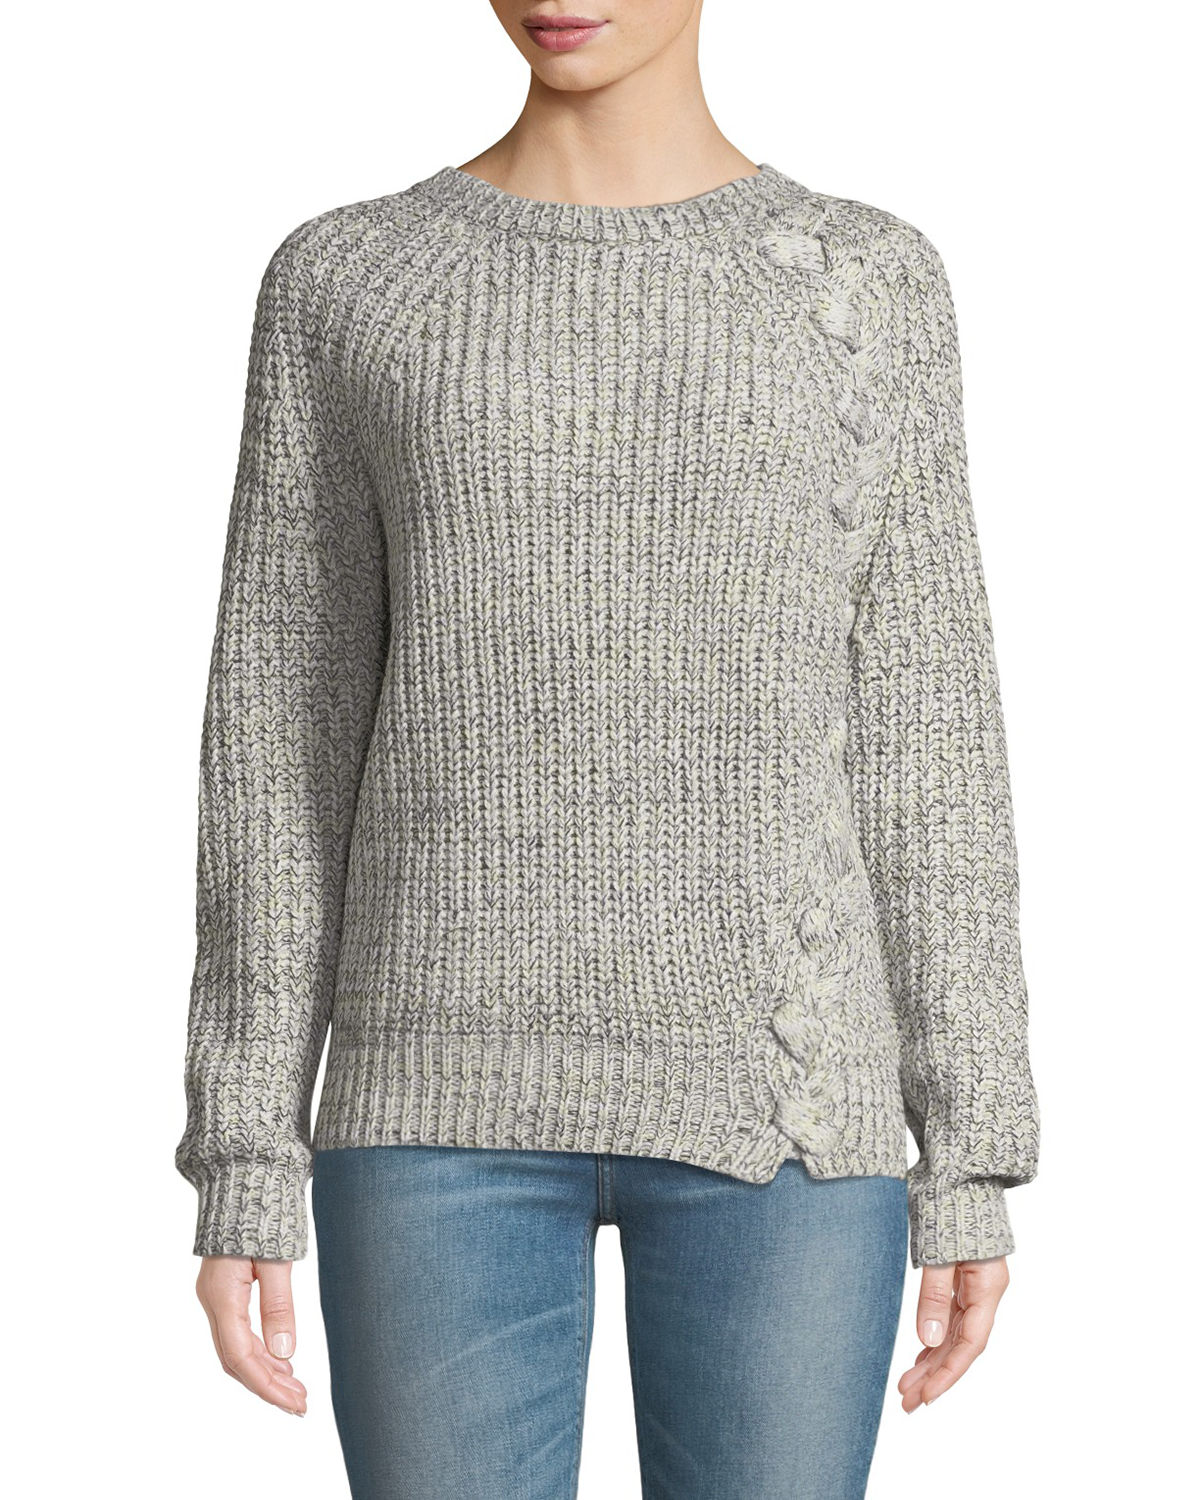 Elisa Ribbed Pullover Sweater W/Braid Detail